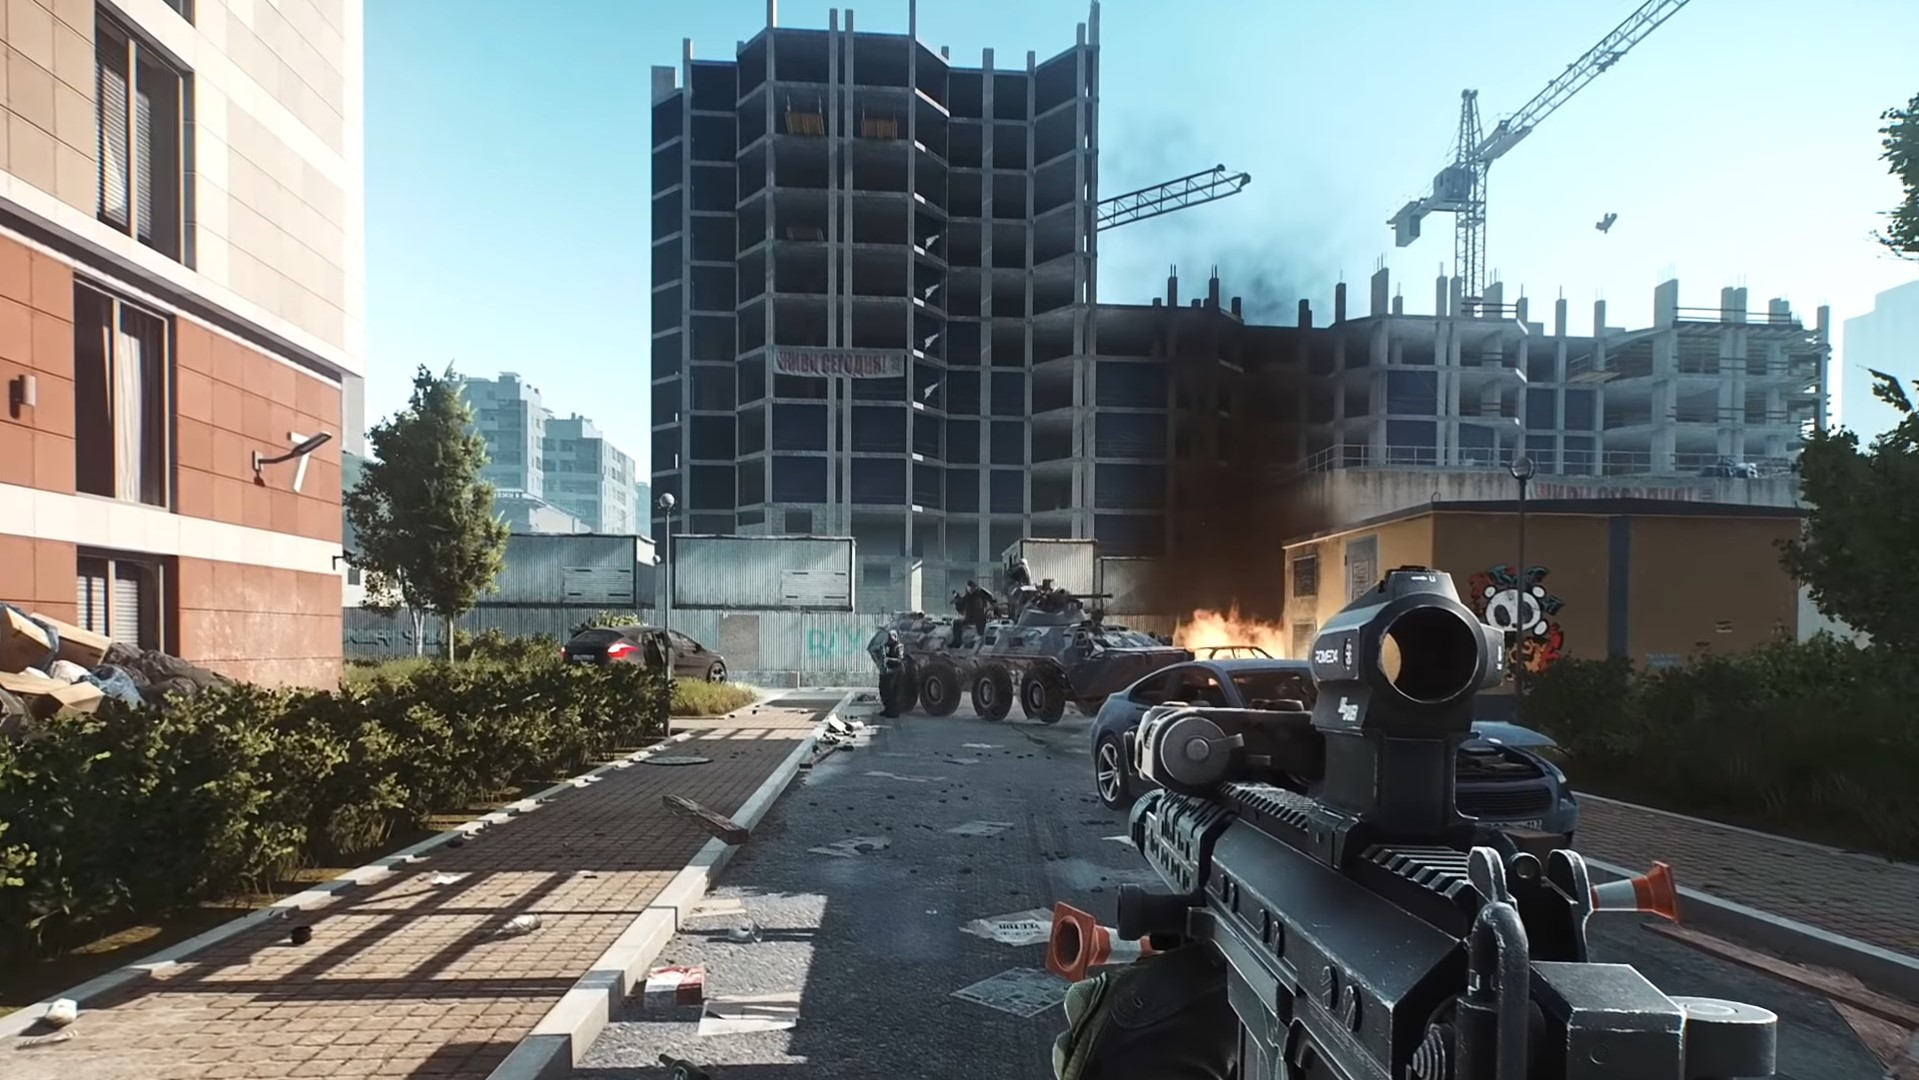 Escape from Tarkov's new trailer shows off upcoming Streets of Tarkov map, again